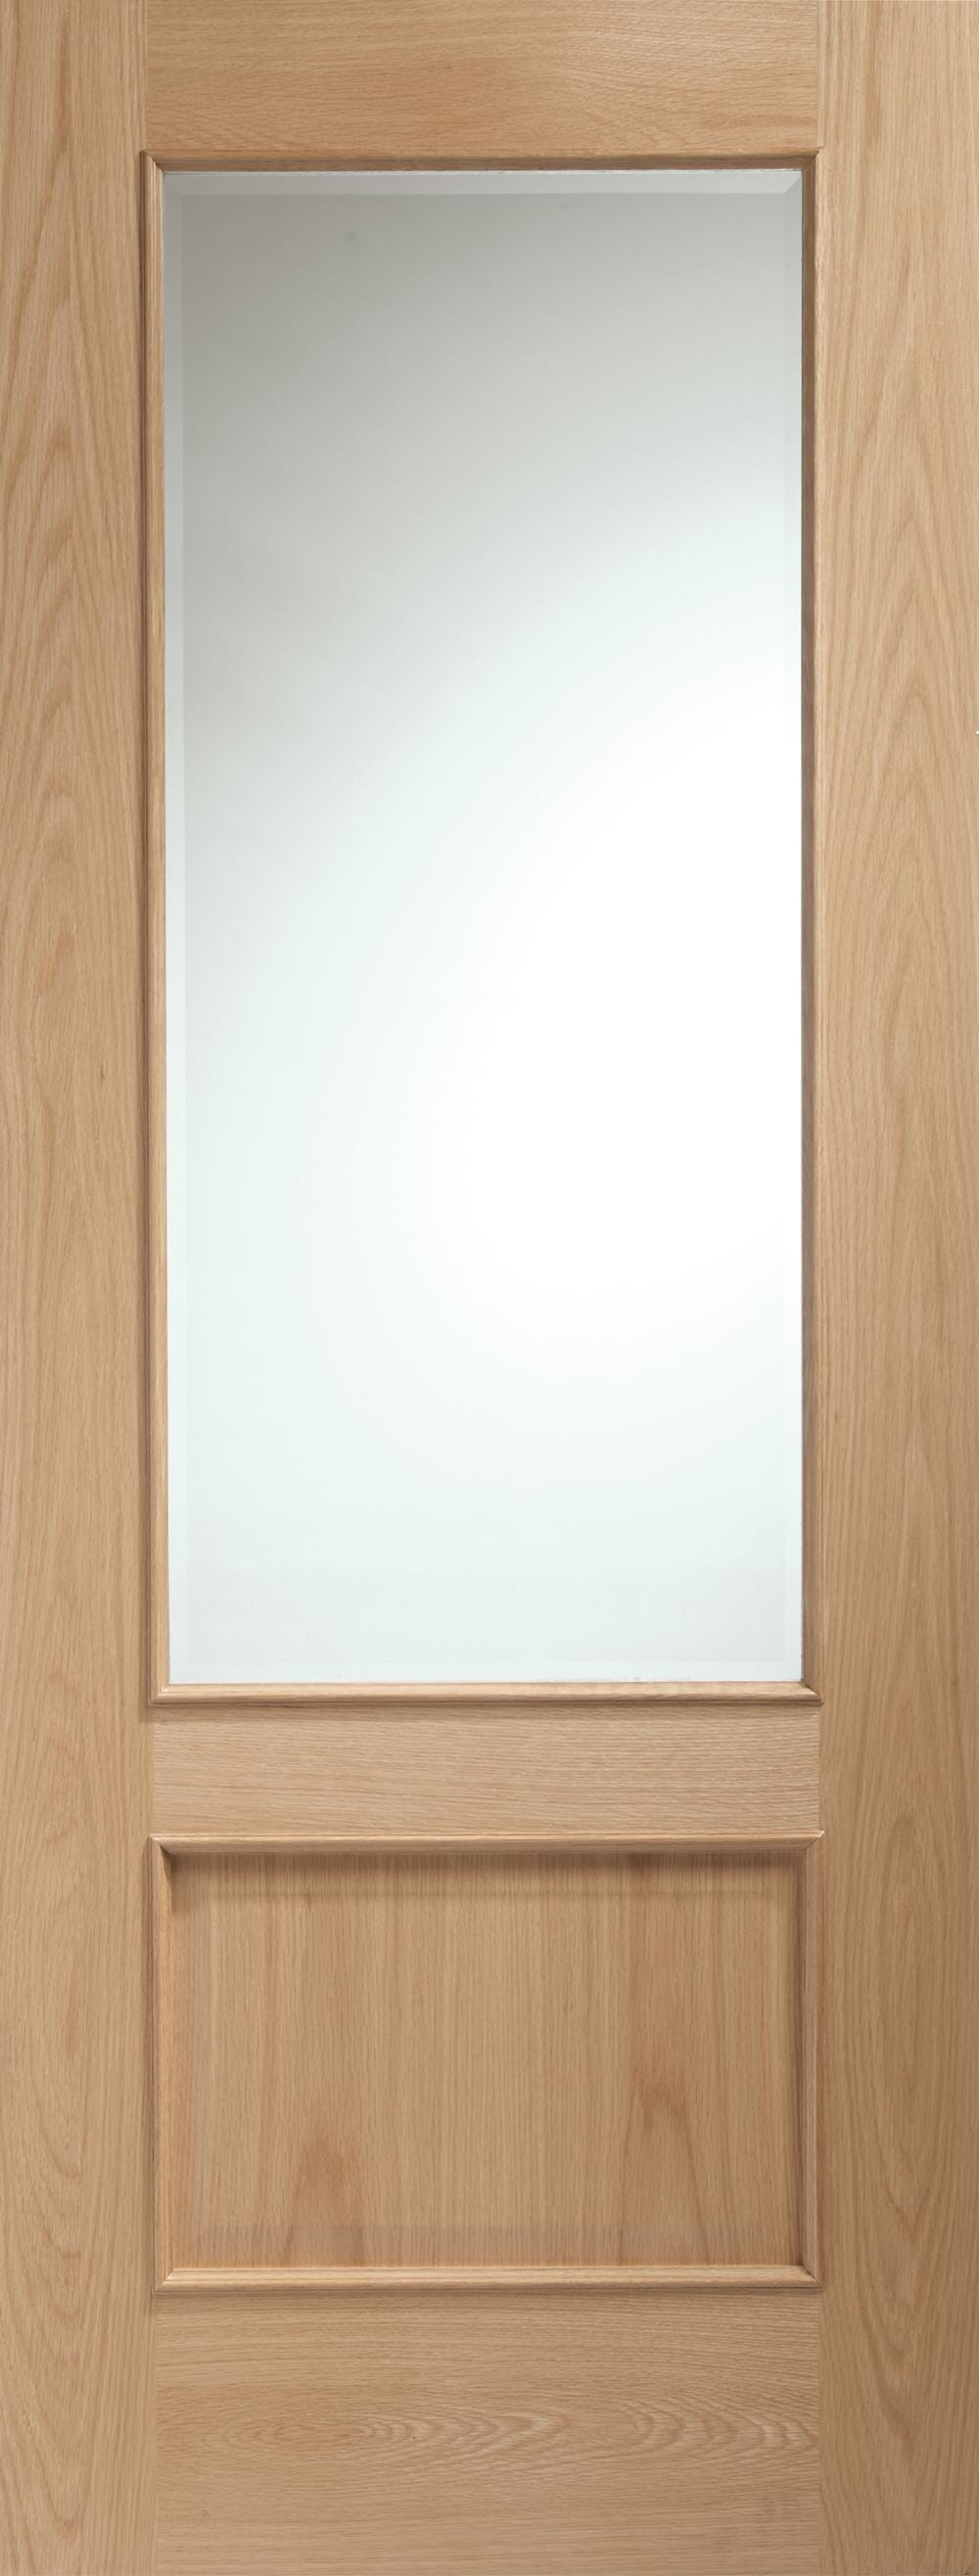 Andria Oak Rm2s Clear Glazed - Xl Joinery  Image